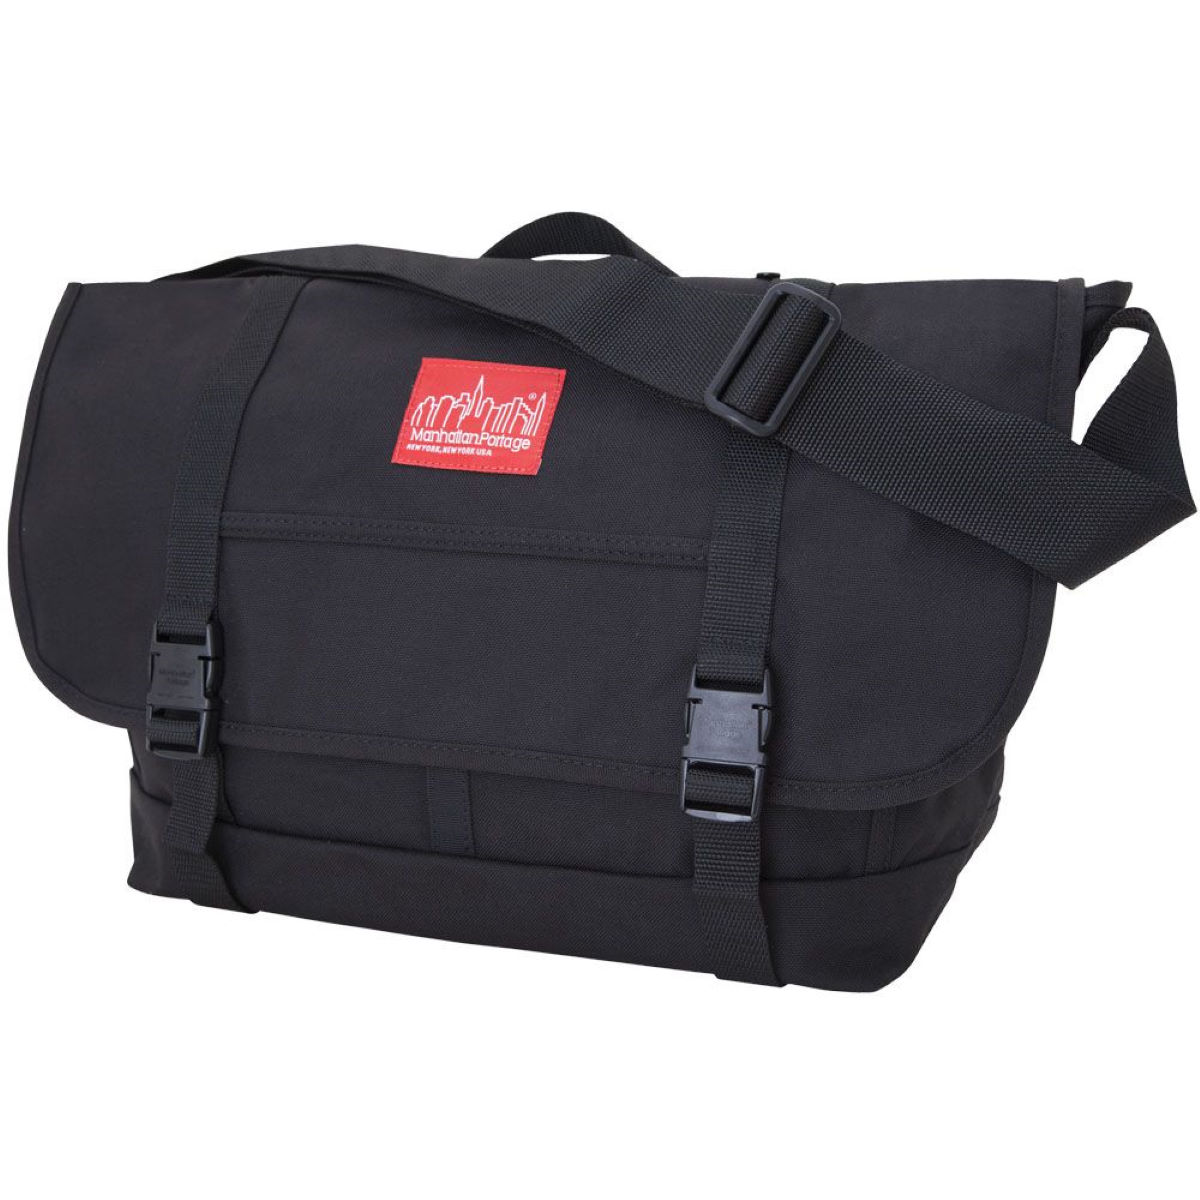 Manhattan Portage NY Messenger Bag (Medium) - Bolsas de viaje